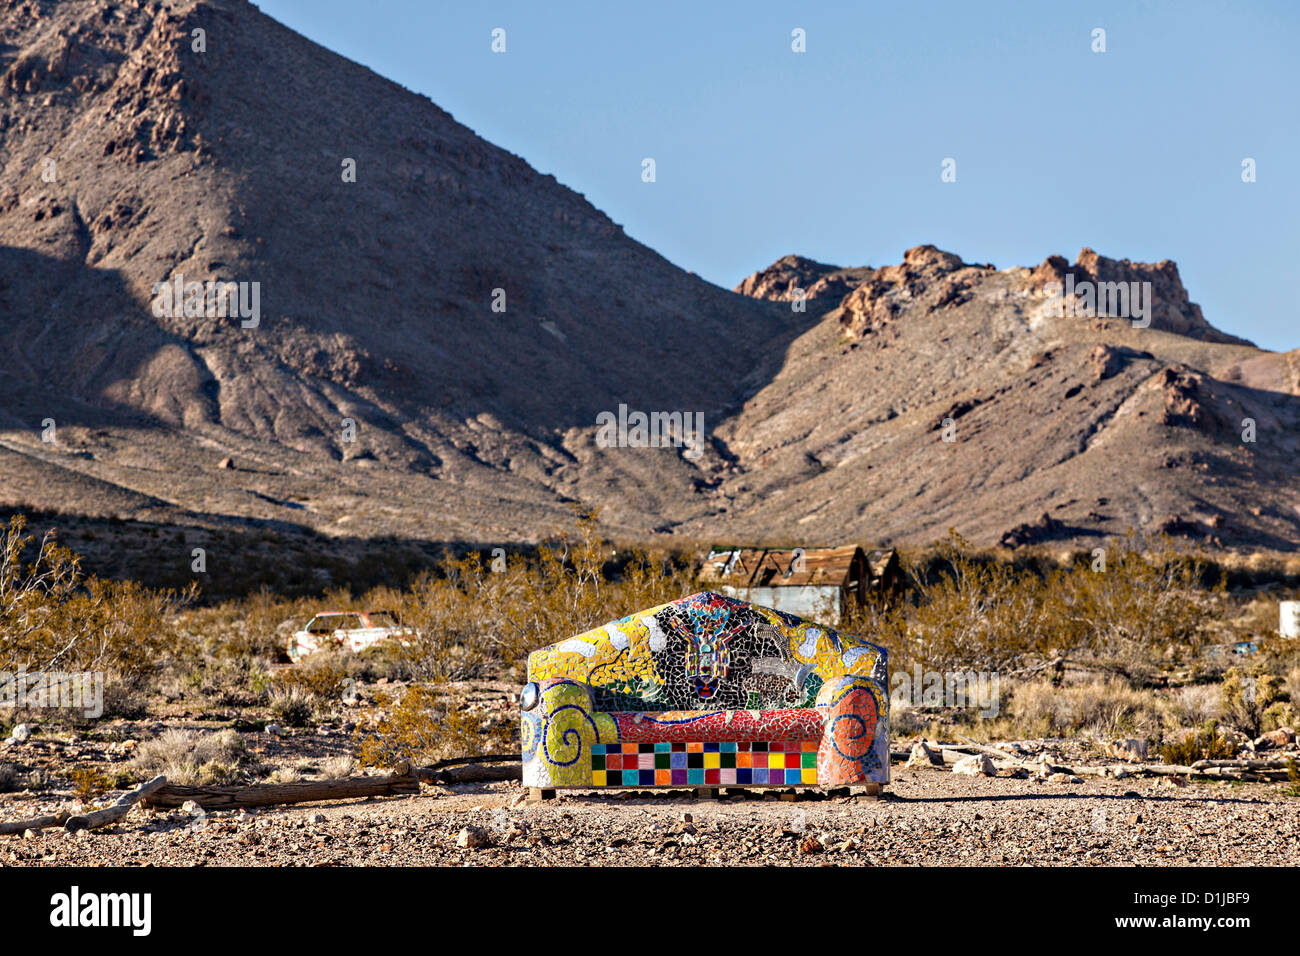 Public sculpture called Sit Here! at the open air museum in Goldwell, NV. - Stock Image